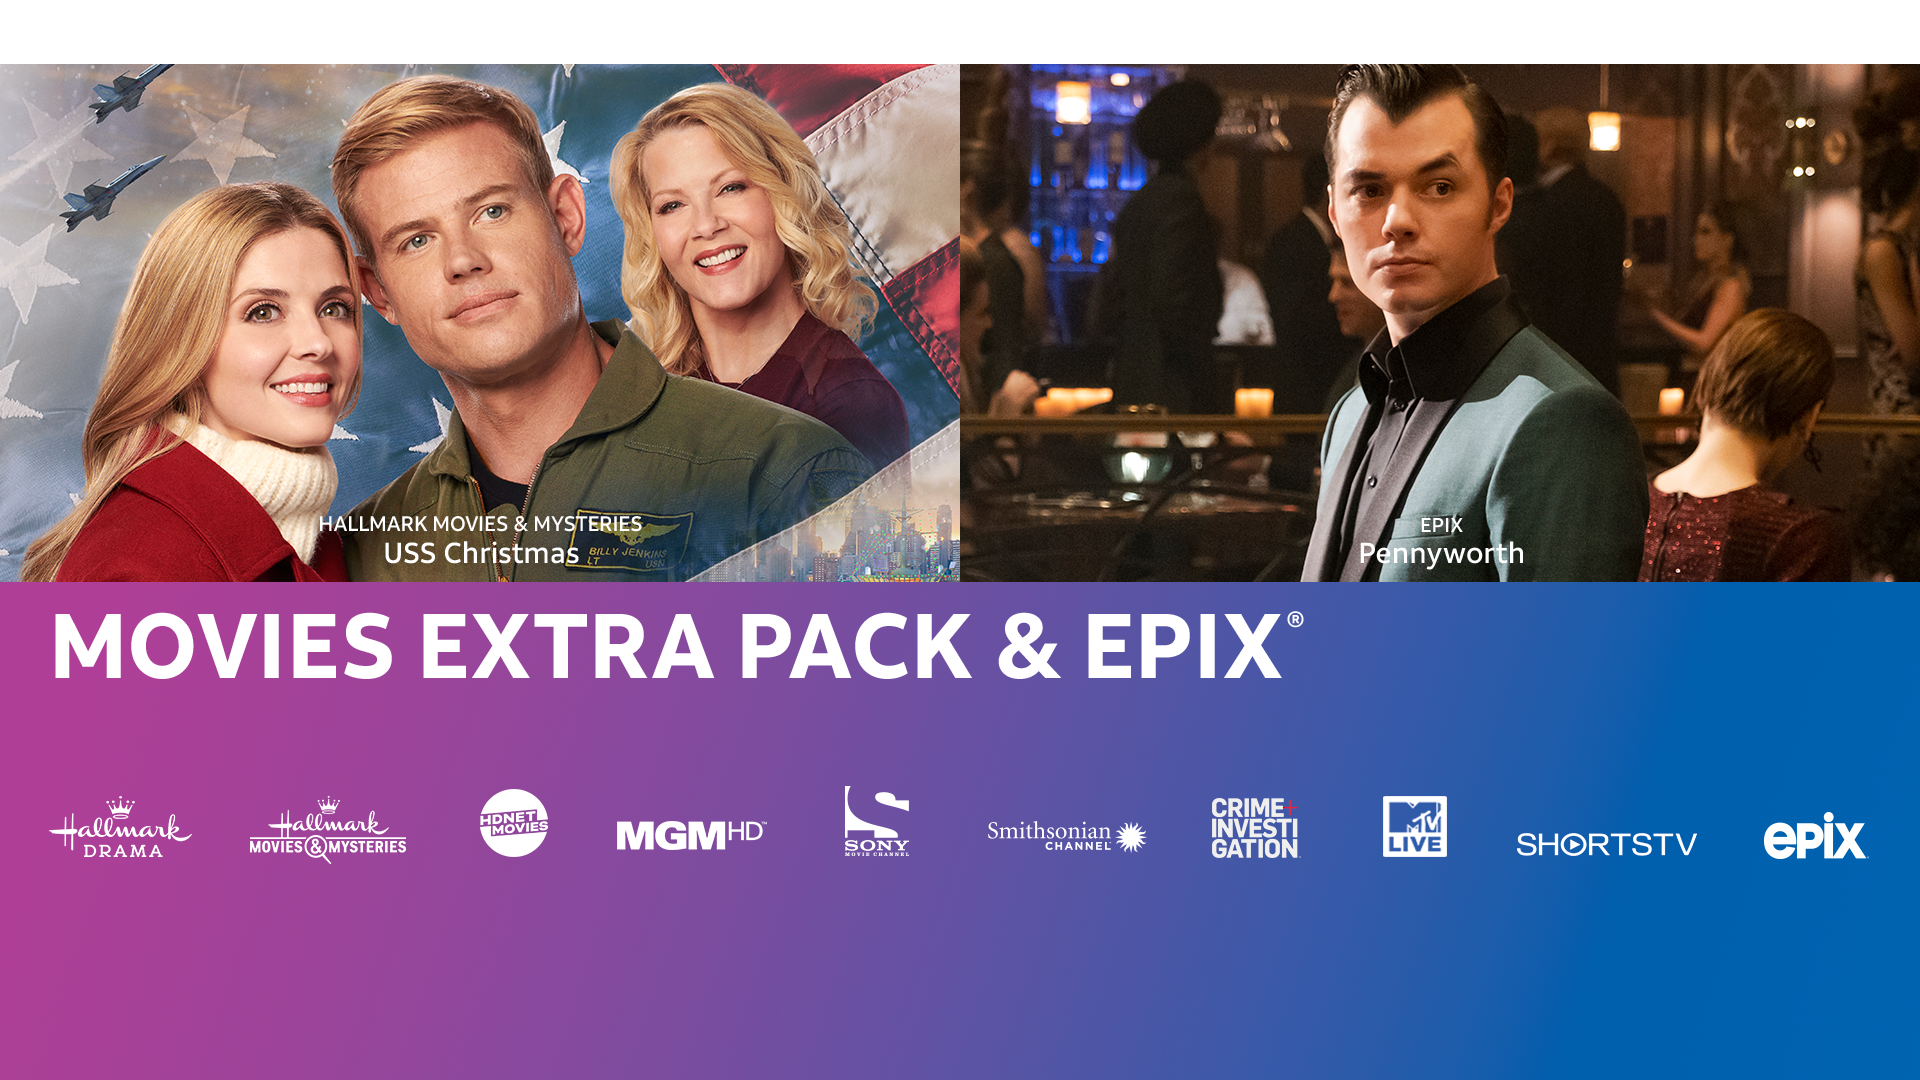 Order Movies Extra Pack On DIRECTV for $4.99 and get EPIX FREE For 3 Months